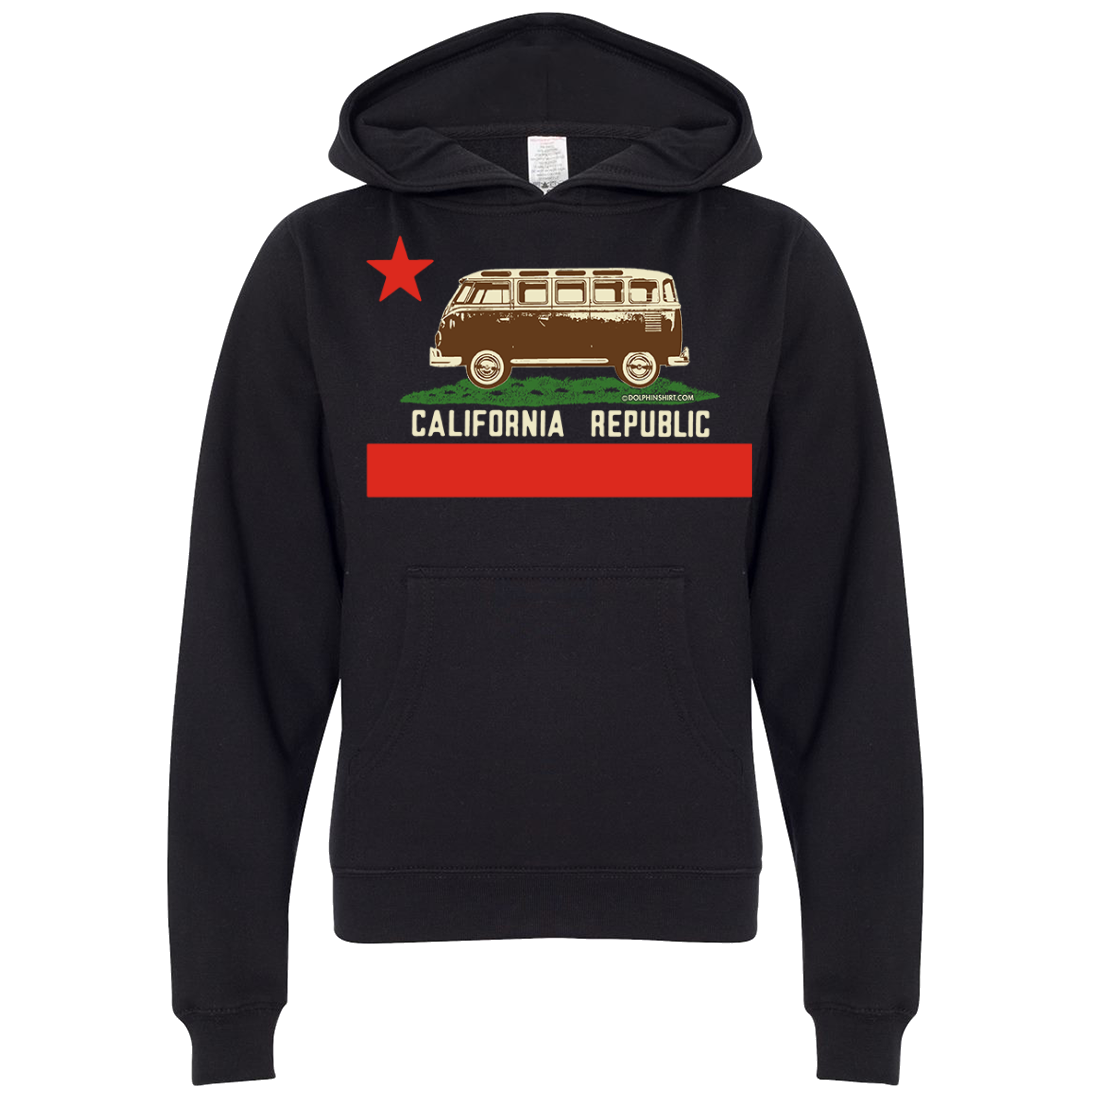 California Republic Vintage Van Premium Youth Sweatshirt Hoodie